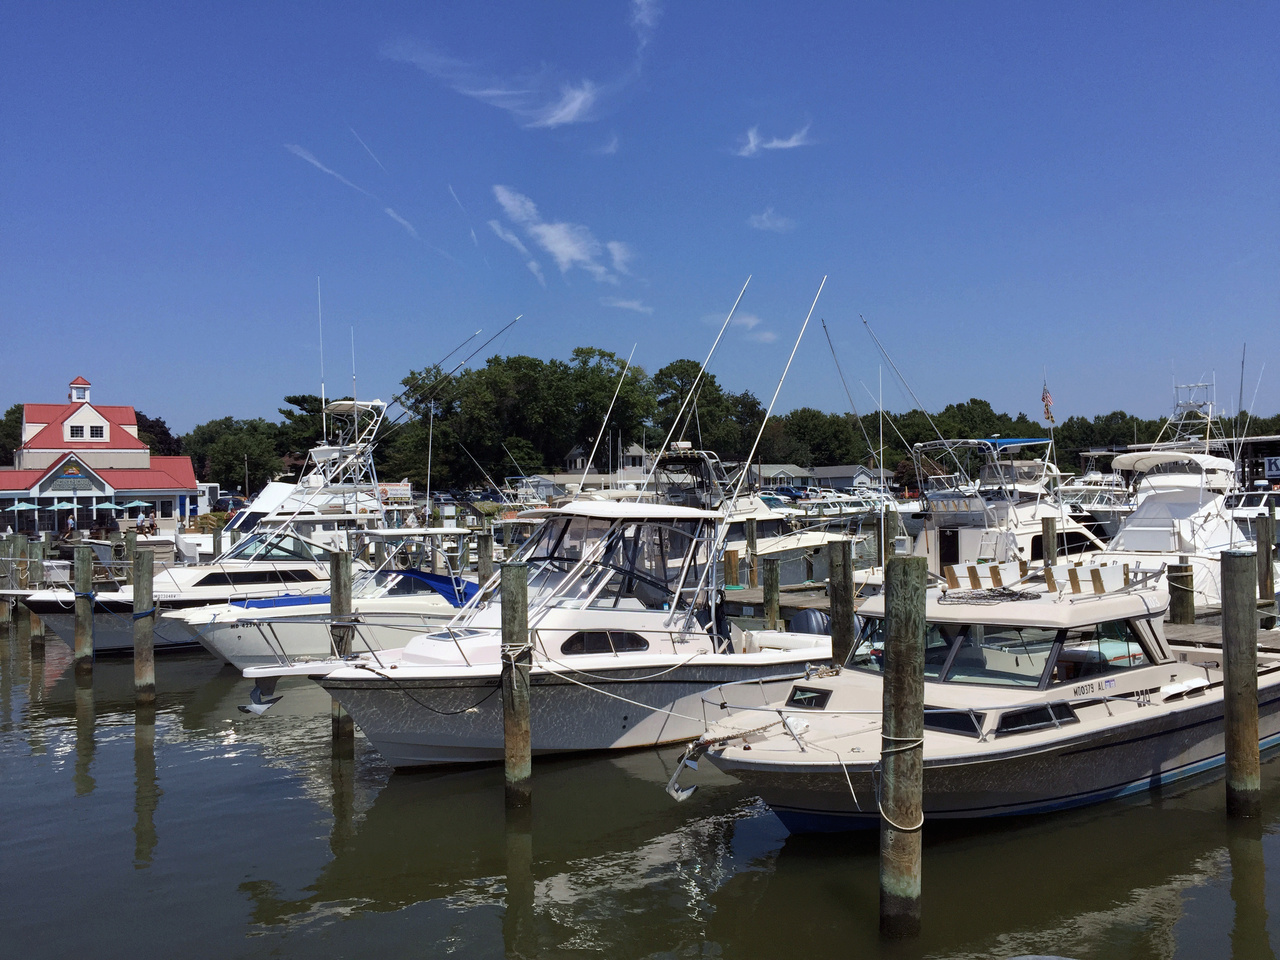 Marina in Mid-Atlantic